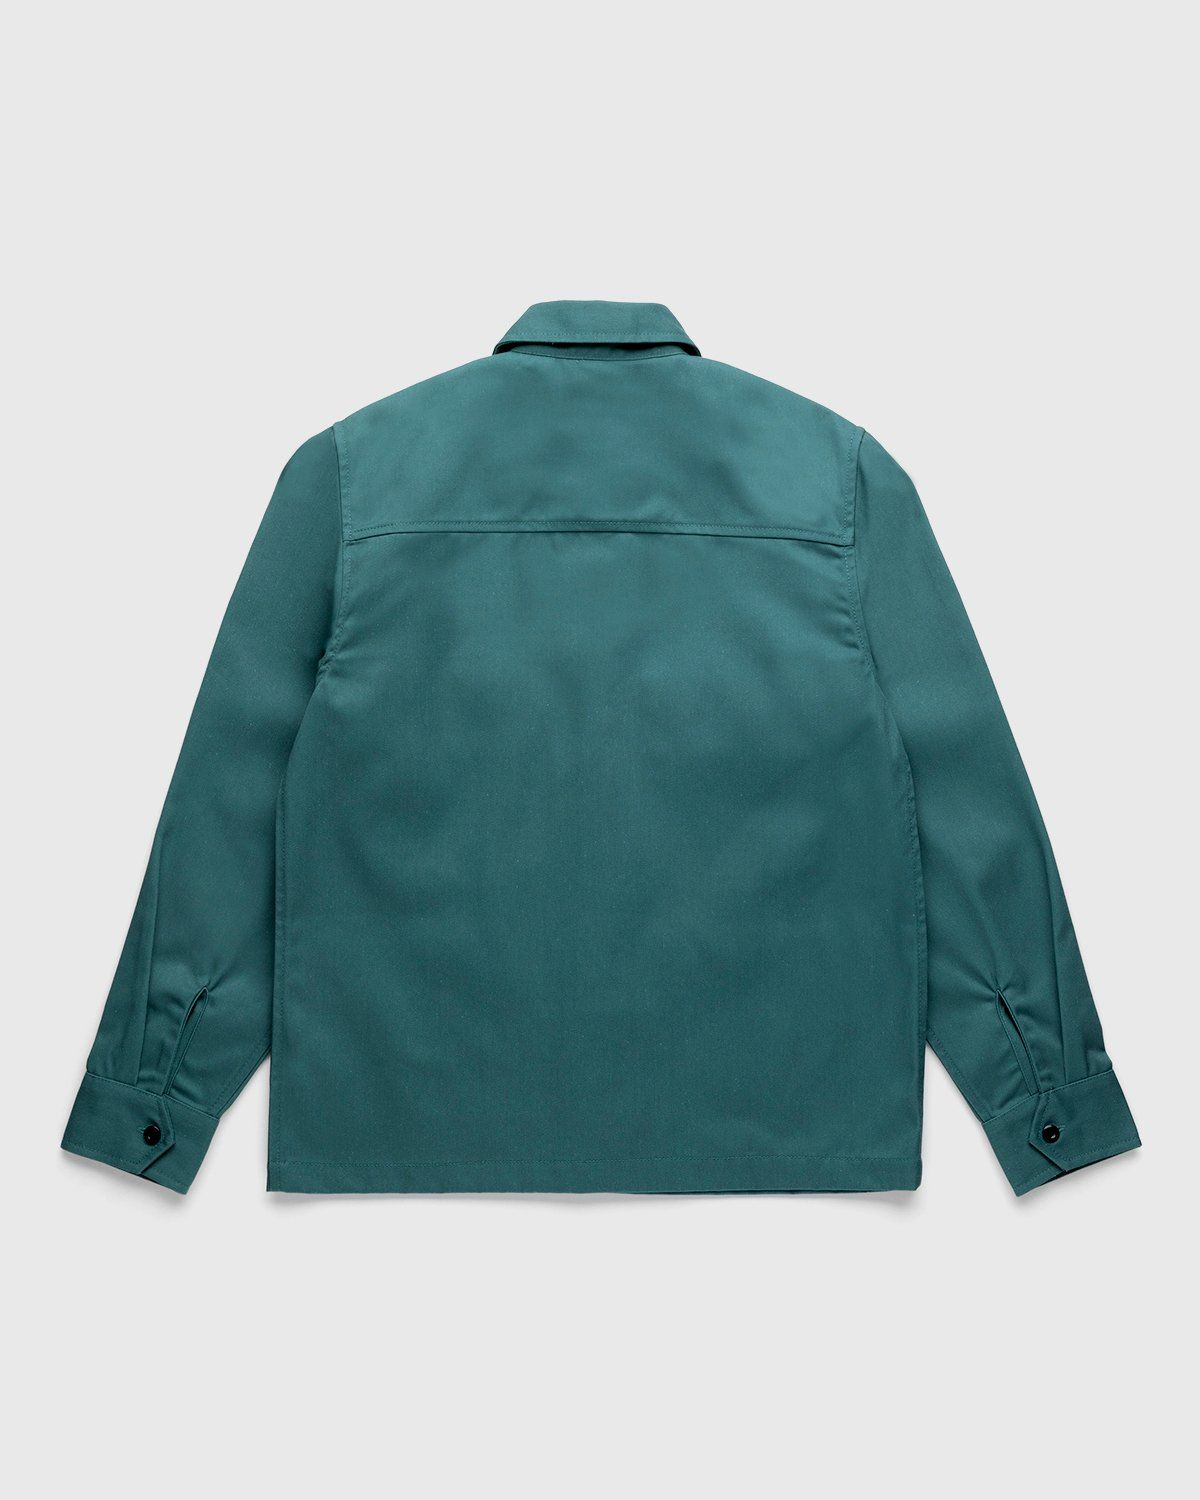 Highsnobiety x Dickies – Service Shirt Lincoln Green - Image 2